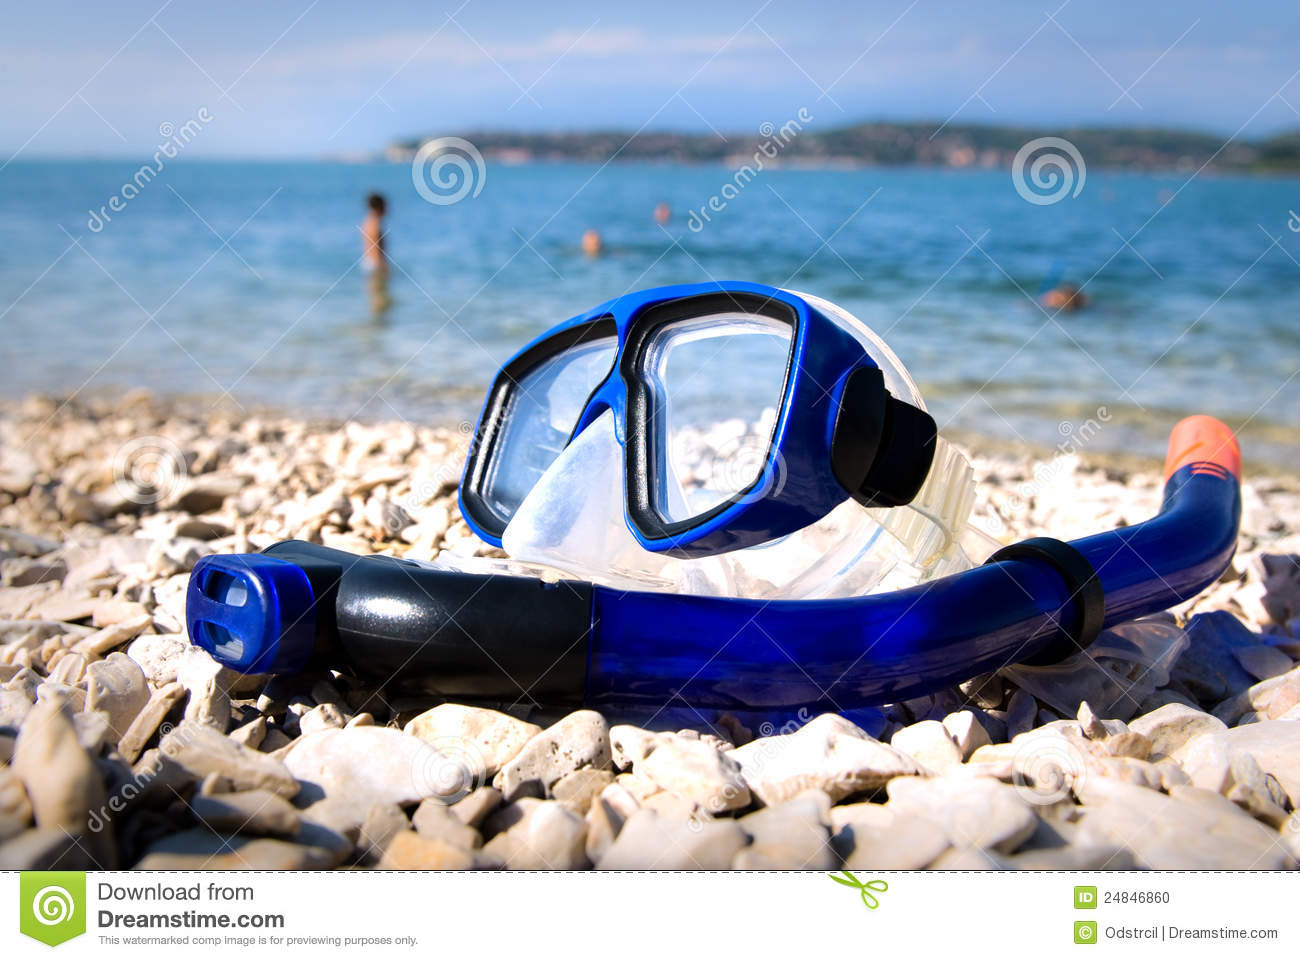 beach goggles  Blue Goggles On The Beach Sand Stock Photo - Image: 68613228